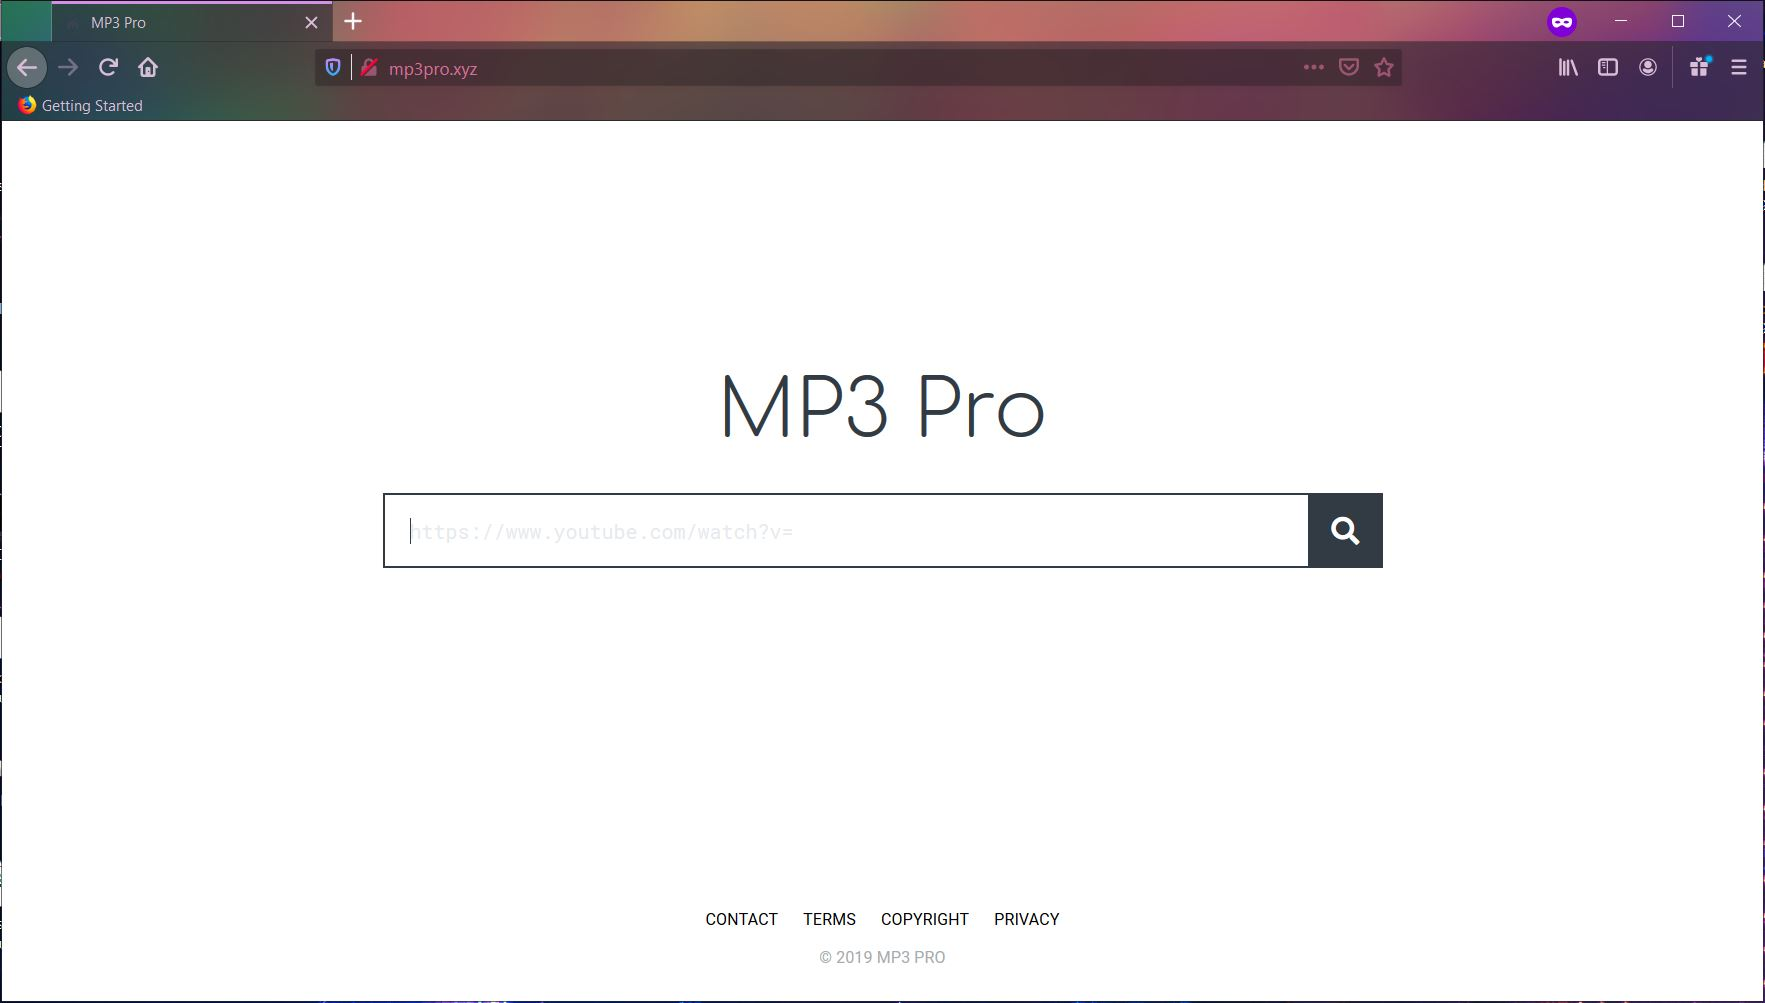 remove mp3pro.xyz hoax search engine sensorstechforum